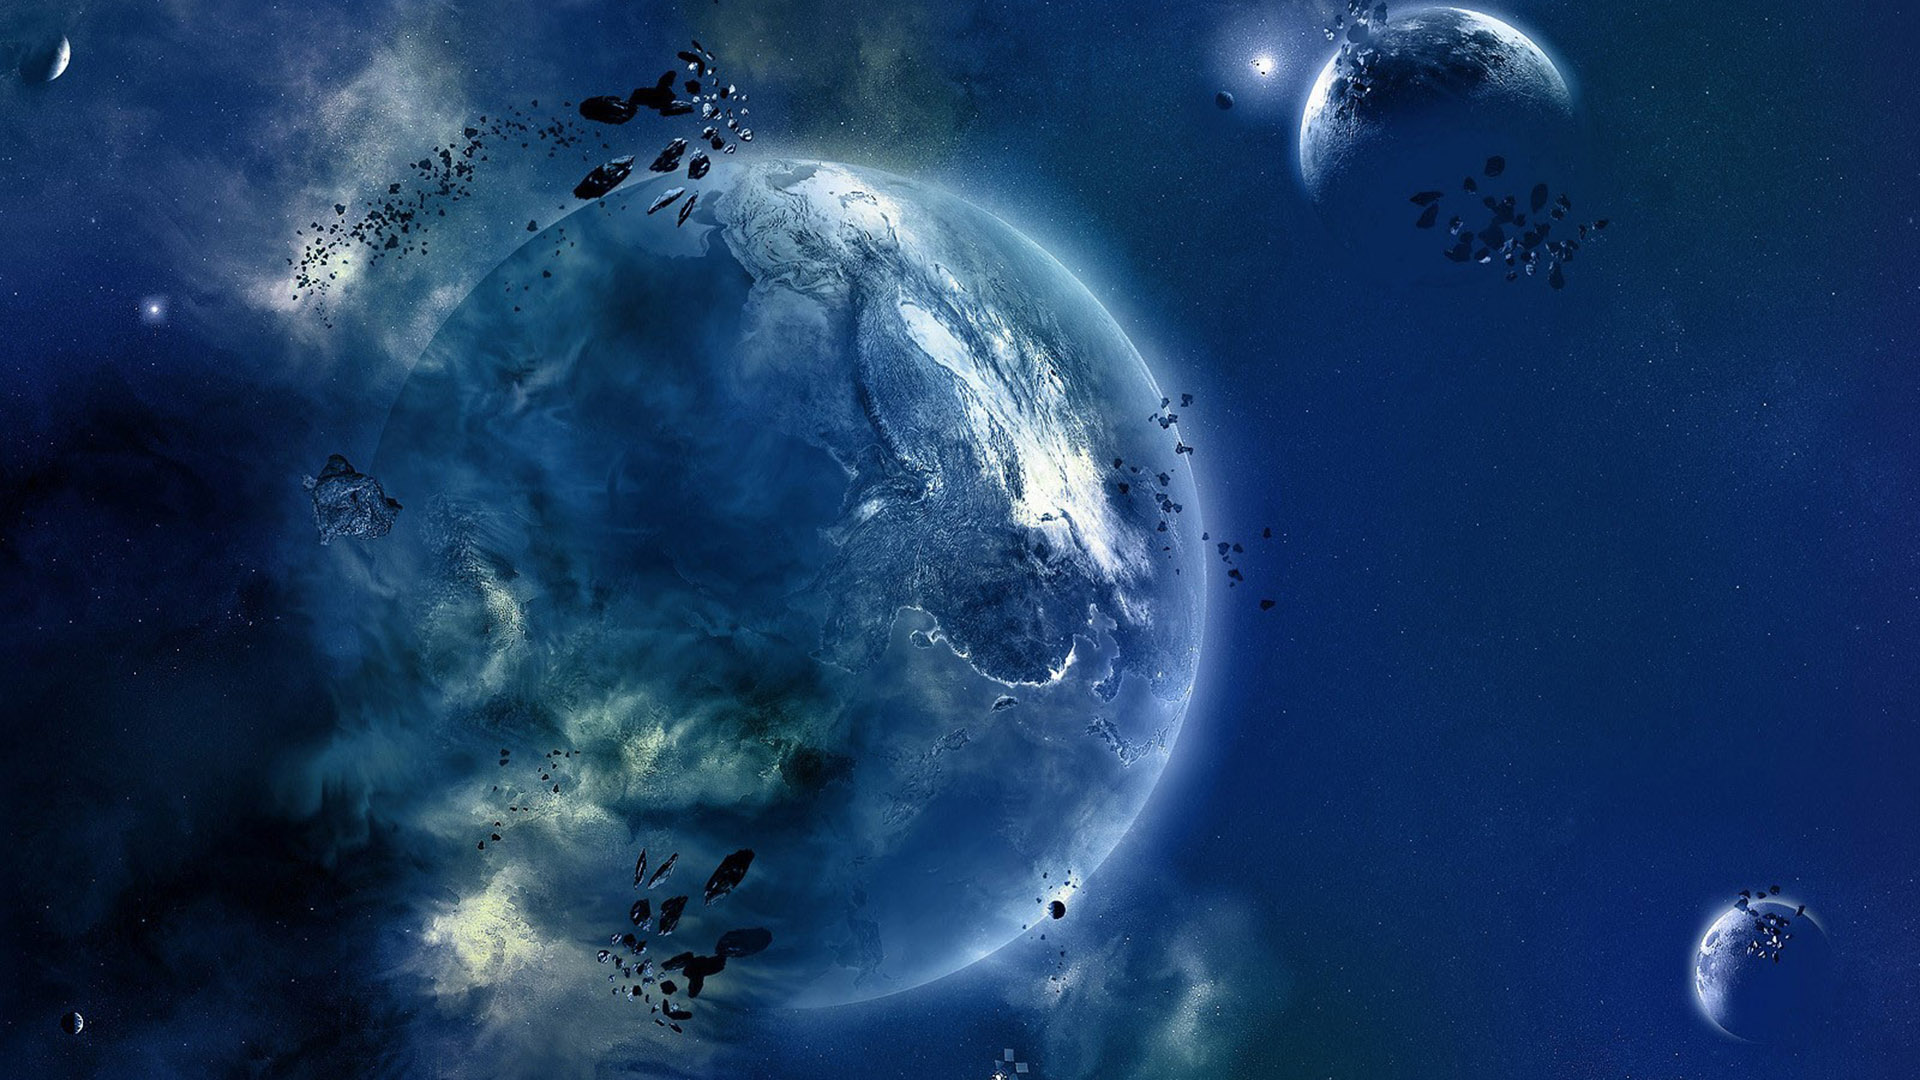 Fantasy space art free desktop wallpapers for widescreen hd and wallpaper voltagebd Images